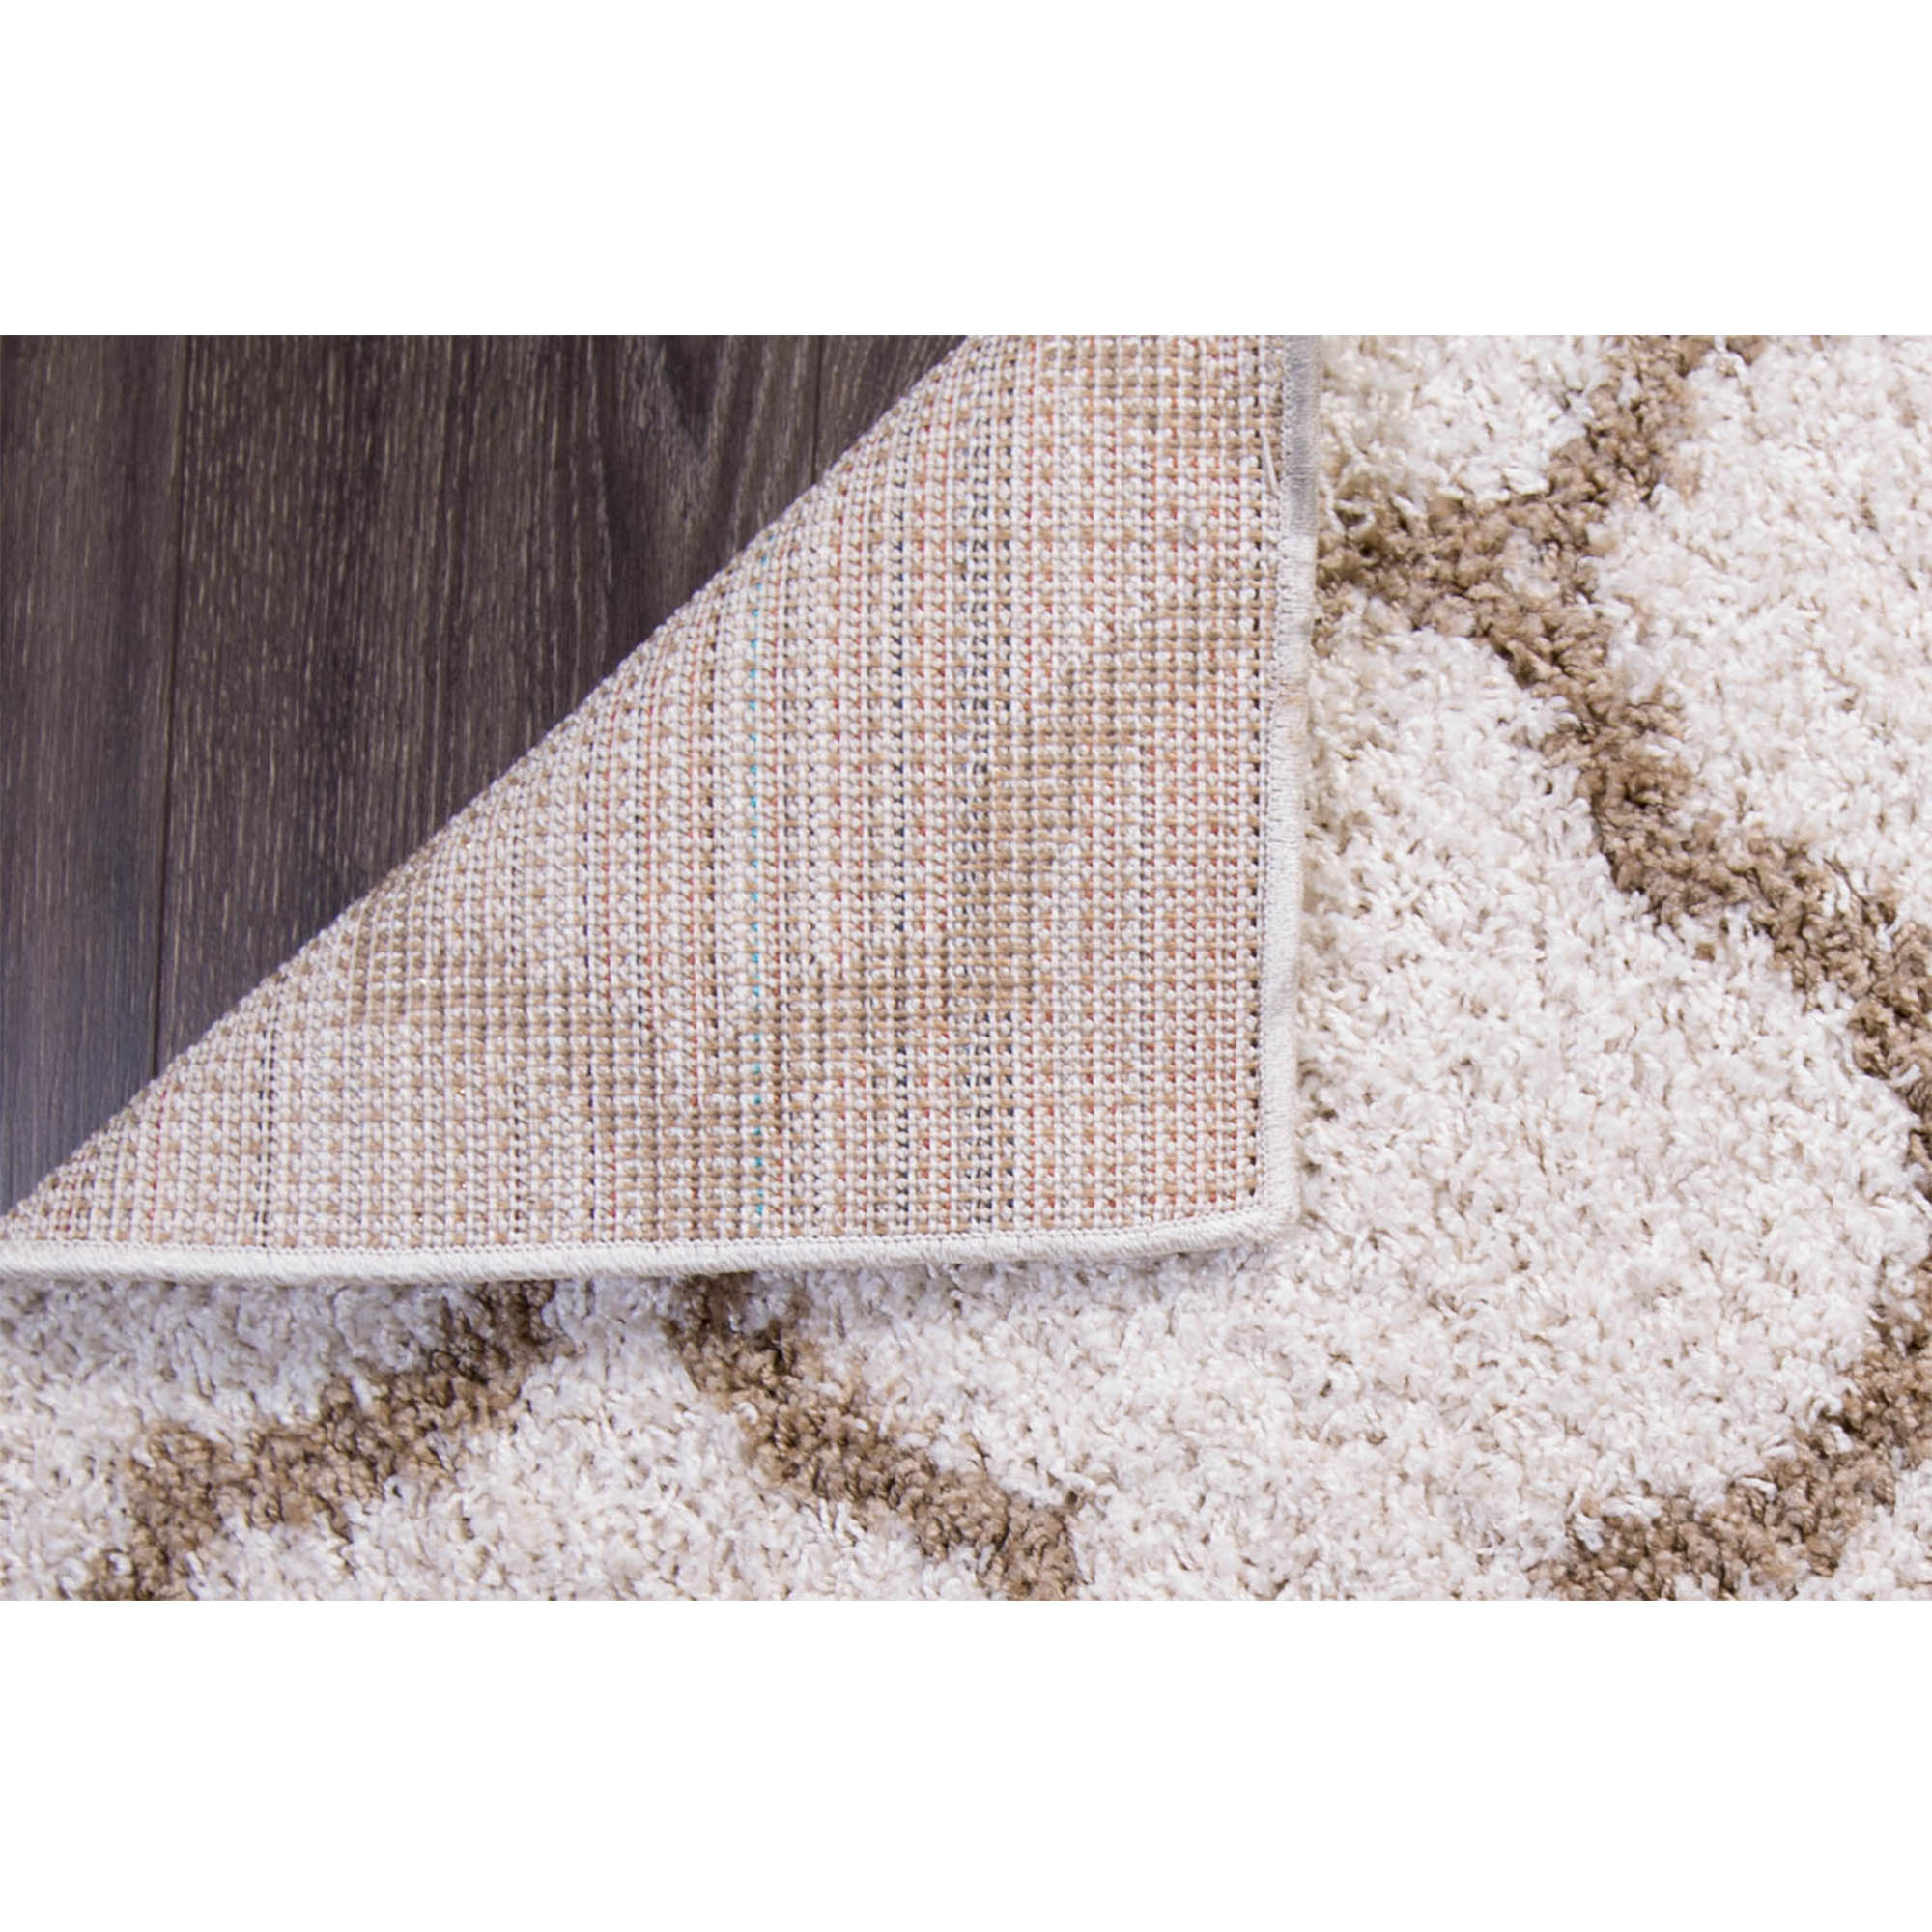 Sha Rug Details About Shag Rugs Modern Area Rug Contemporary Abstract Or Solid Shaggy Flokati Carpet